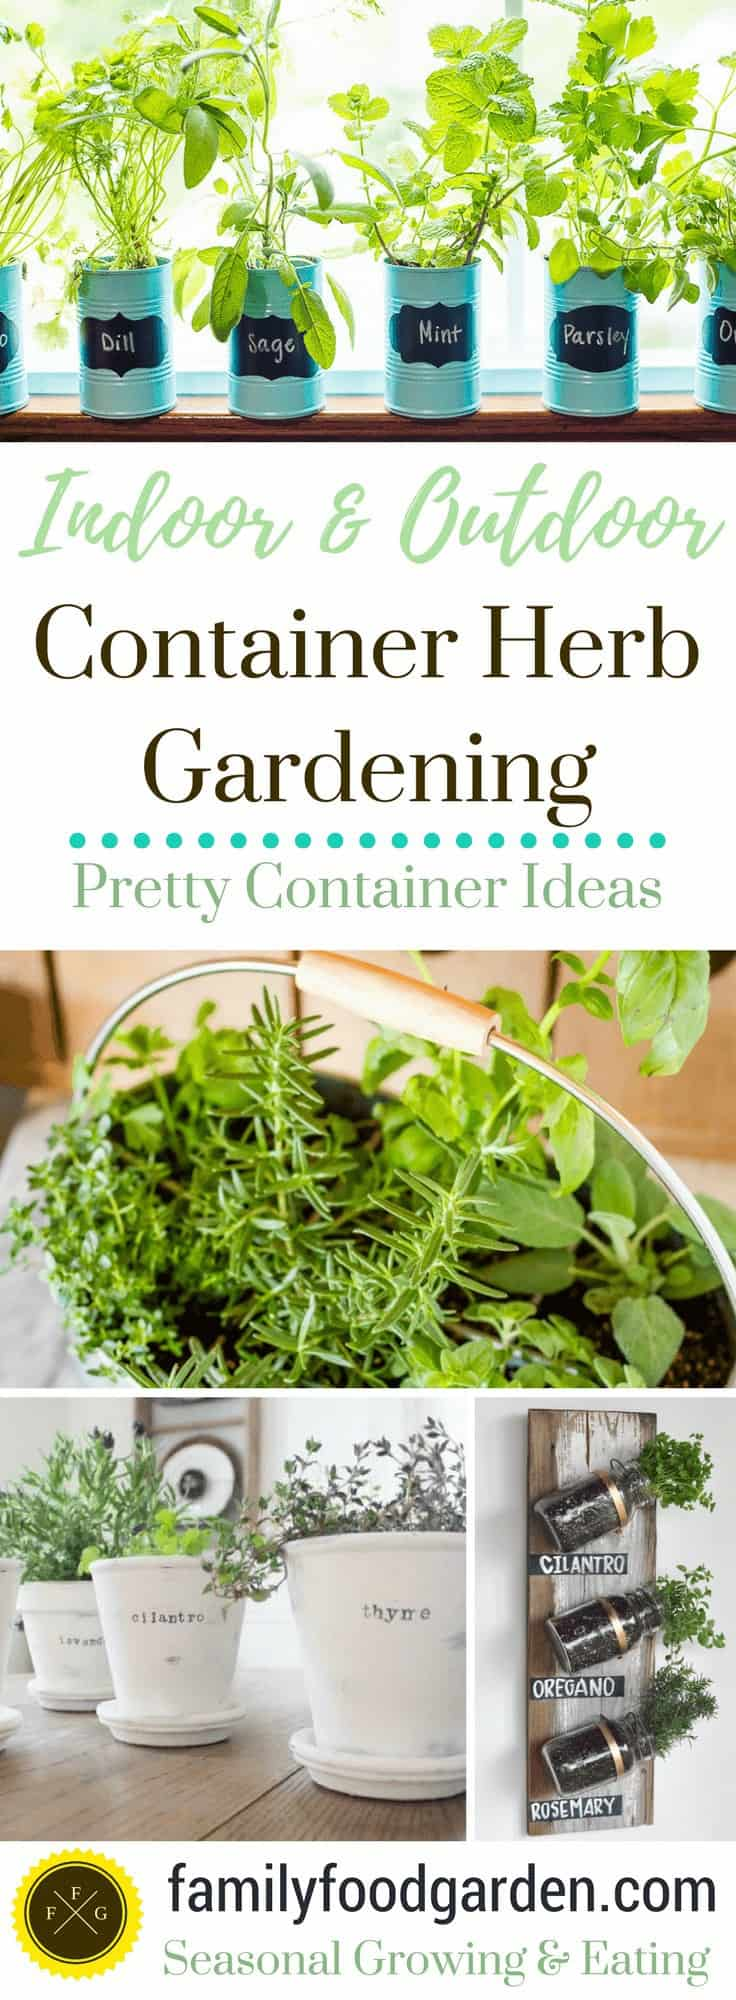 Herb Gardens: Inspiration for beautiful Herb Gardens